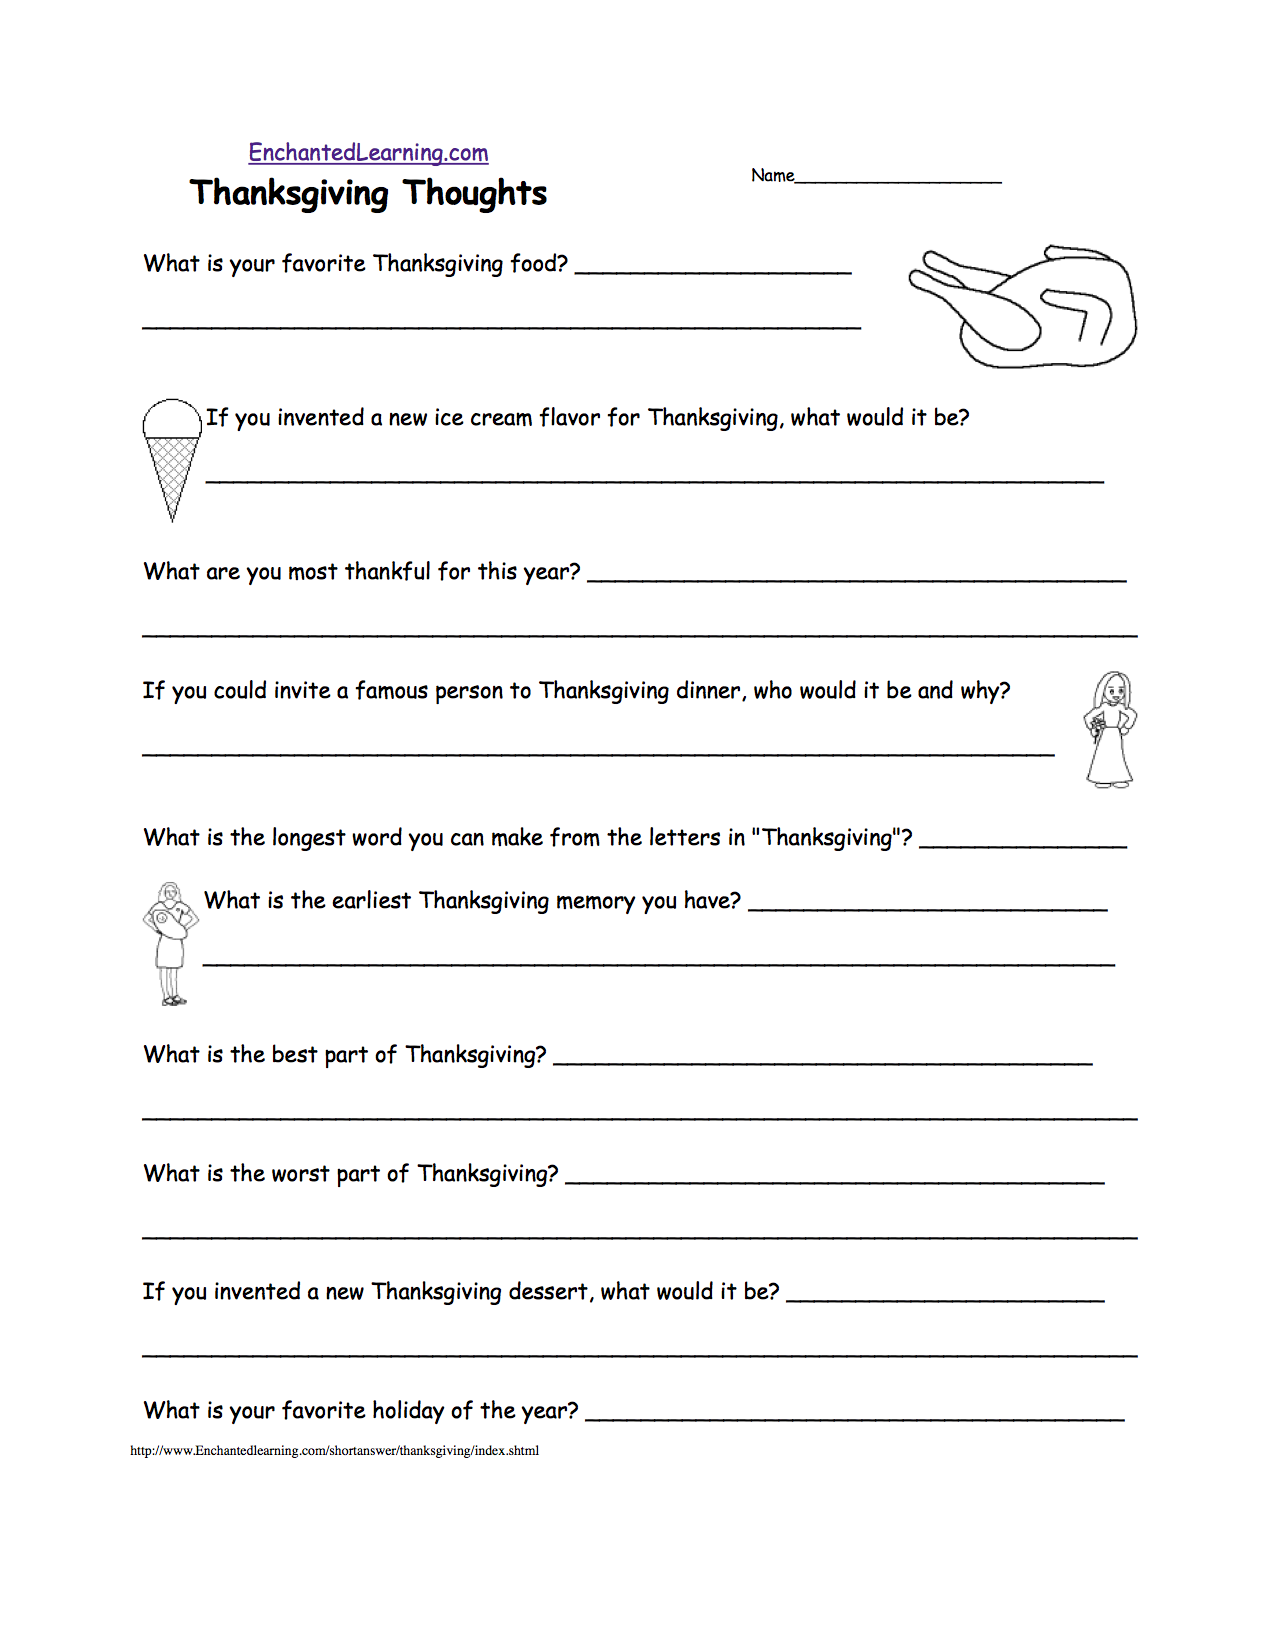 Worksheets Free Aphasia Worksheets thanksgiving activity worksheets free library 1000 images about school on pinterest activities thanksgiving